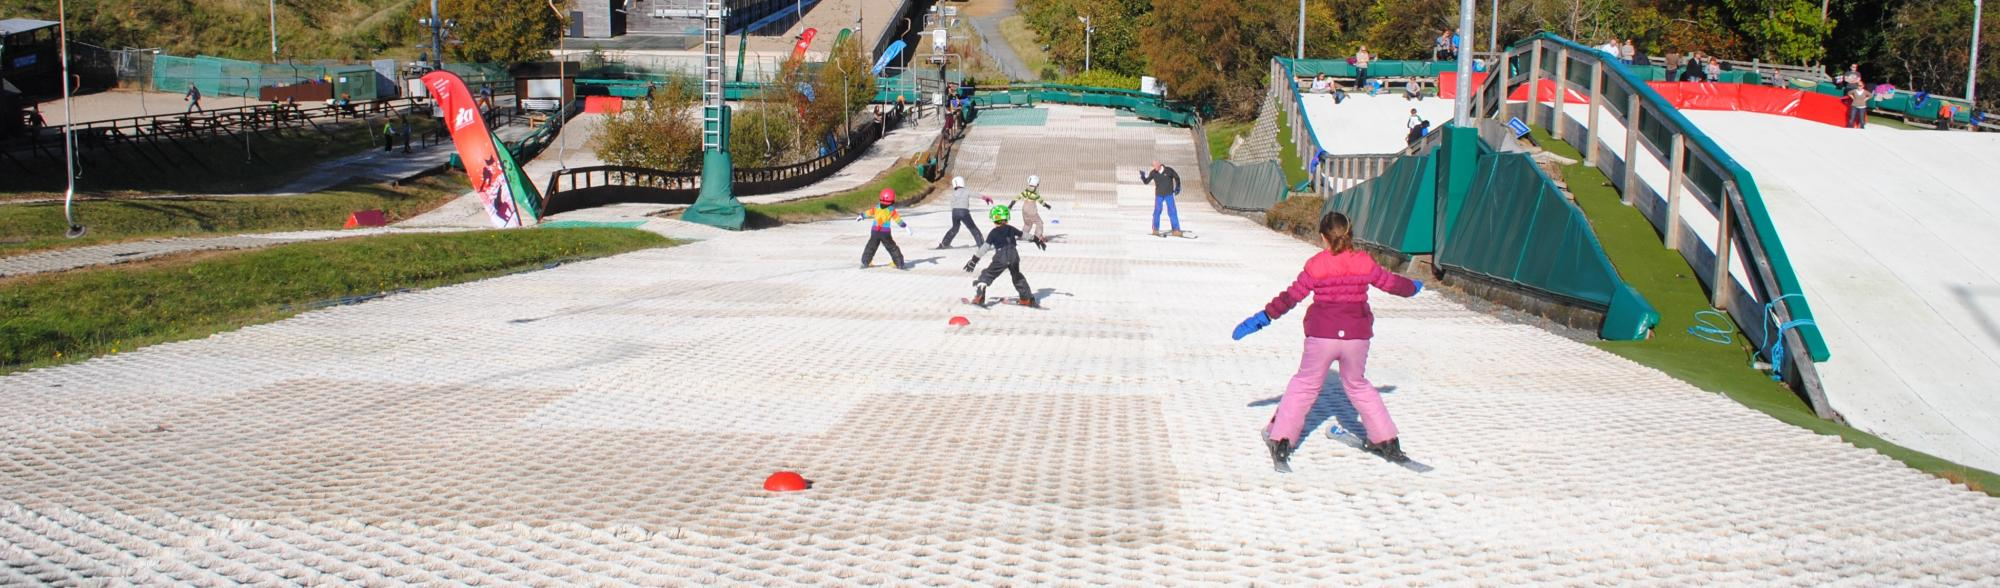 Ski Lessons at ski club of ireland